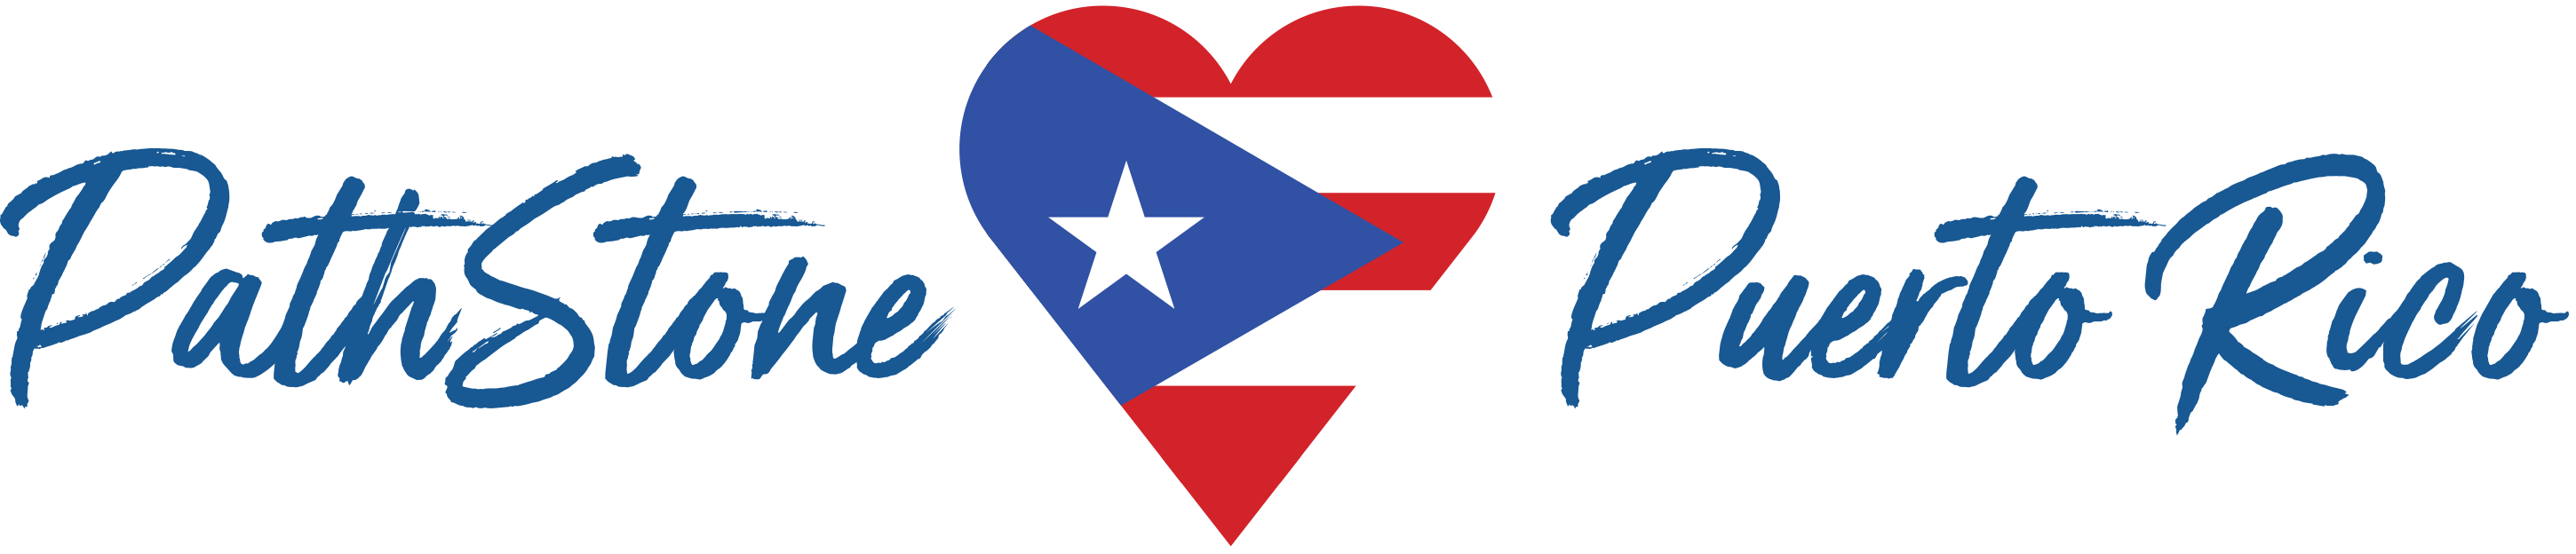 Pathstone [heart] Puerto Rico